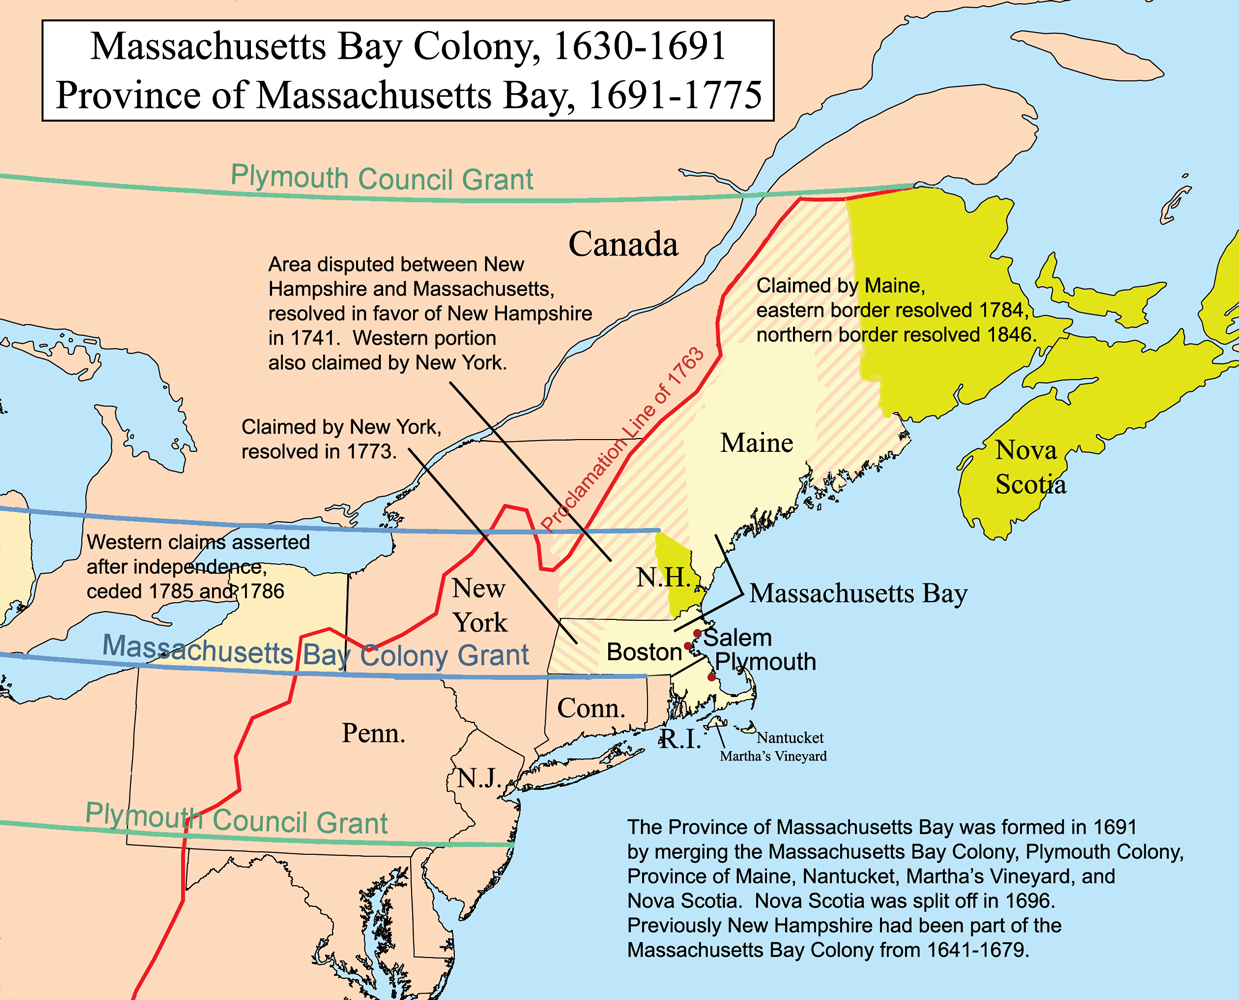 Map of Massachusetts Bay Colony